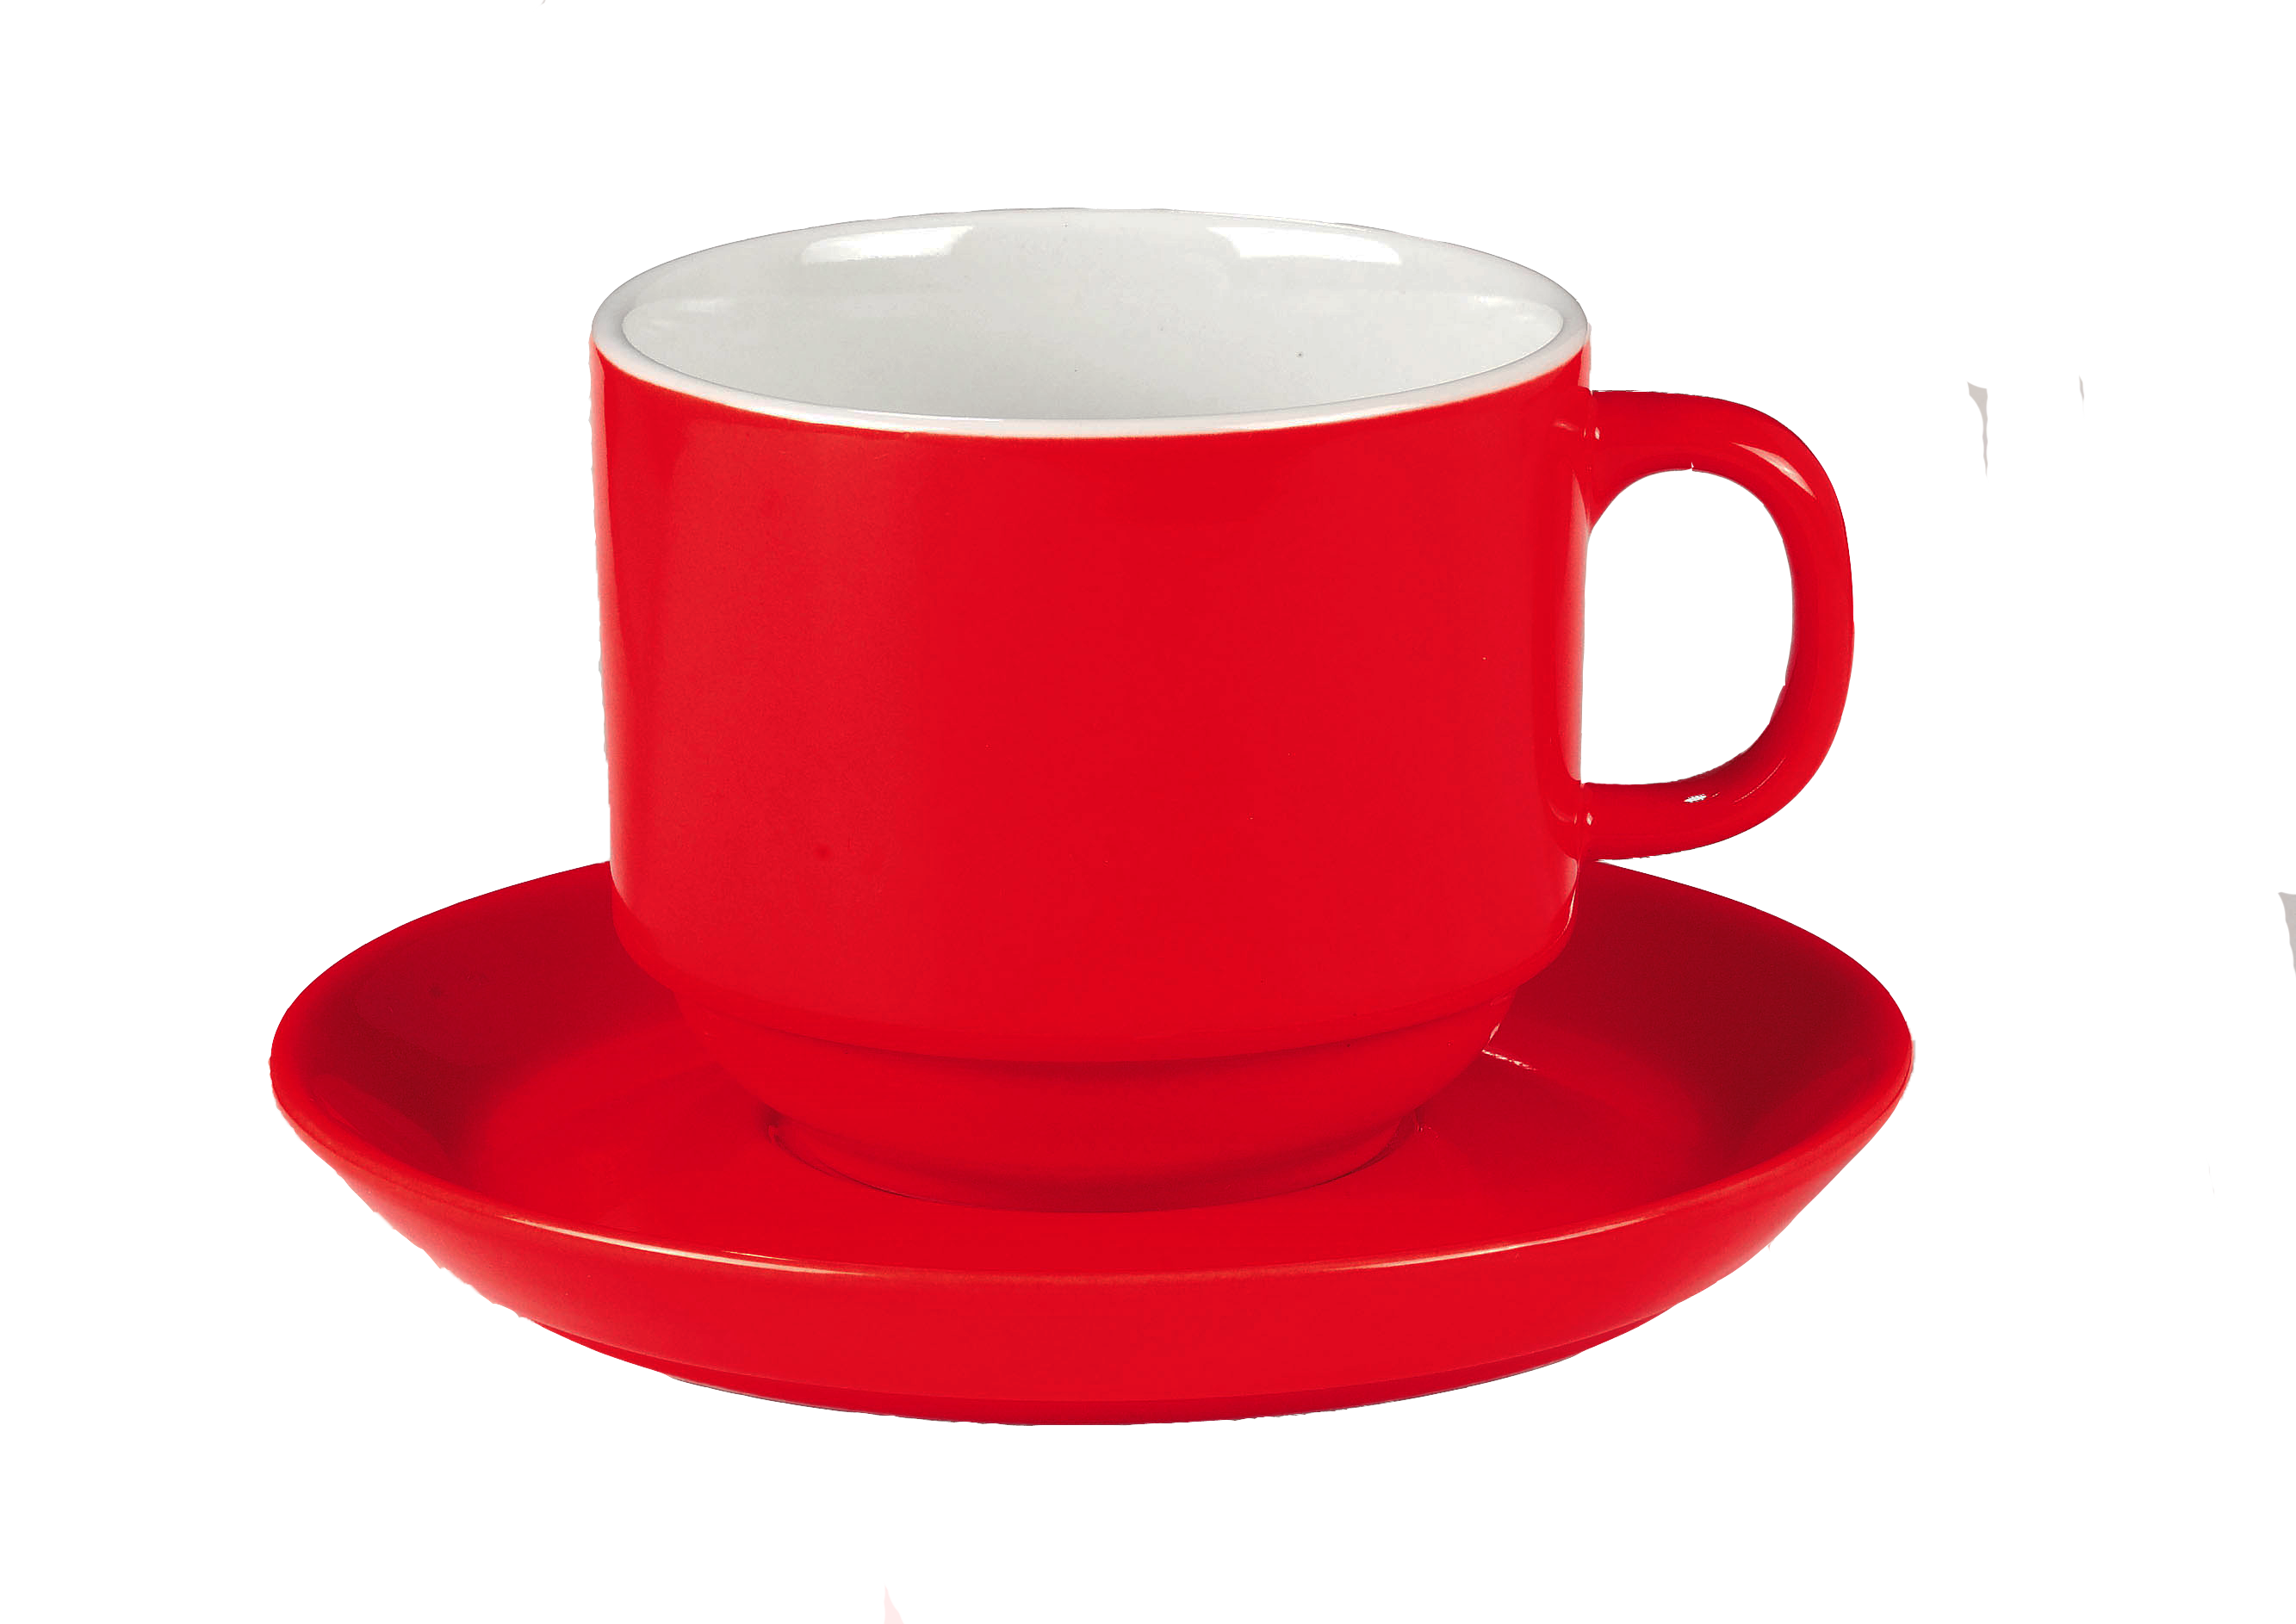 red cup PNG image - Cup PNG